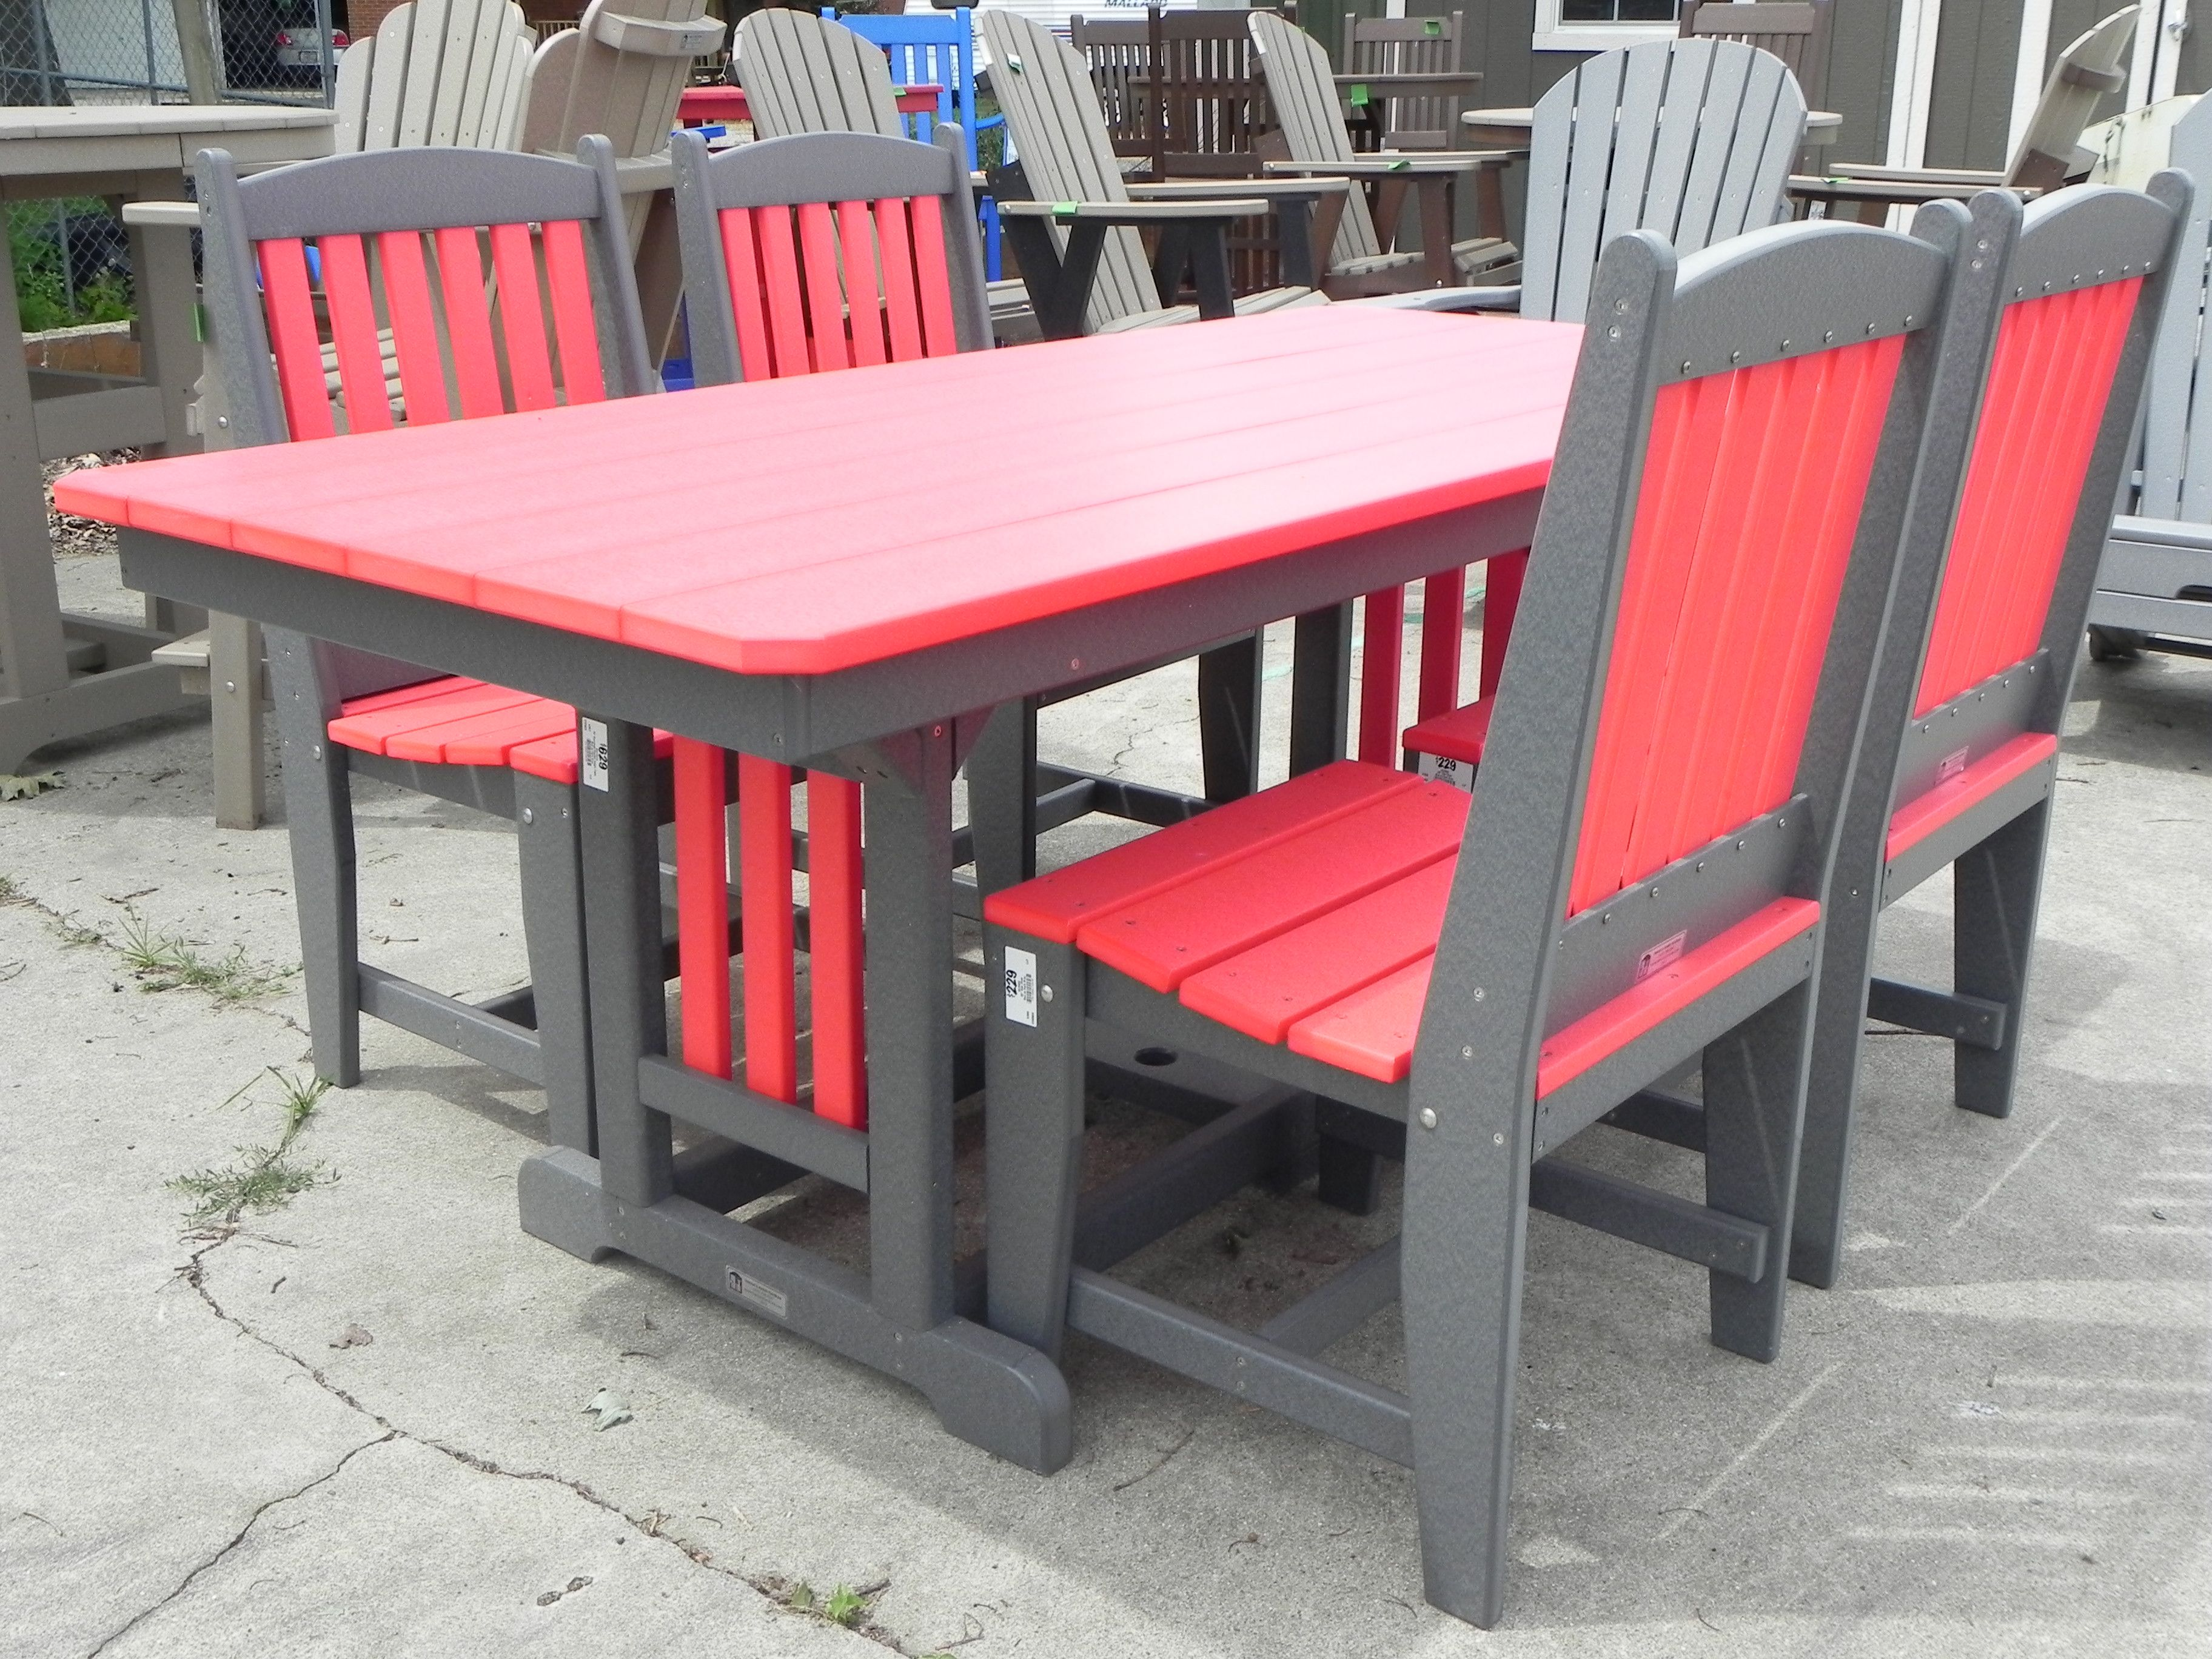 Amish built Outdoor Poly Furniture Made from recycled milk jugs